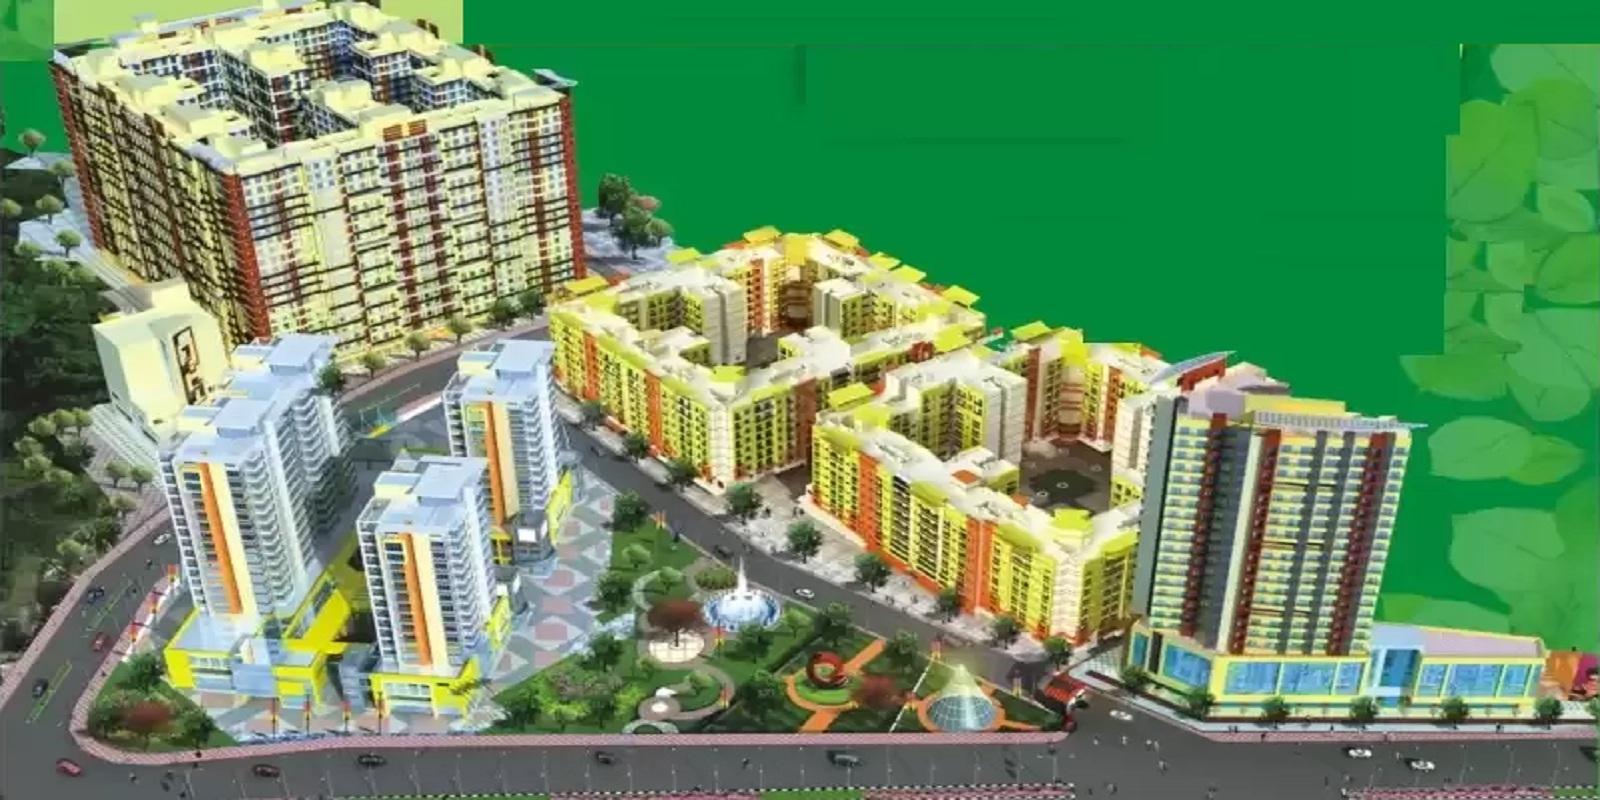 mayfair housing primrose project project large image1